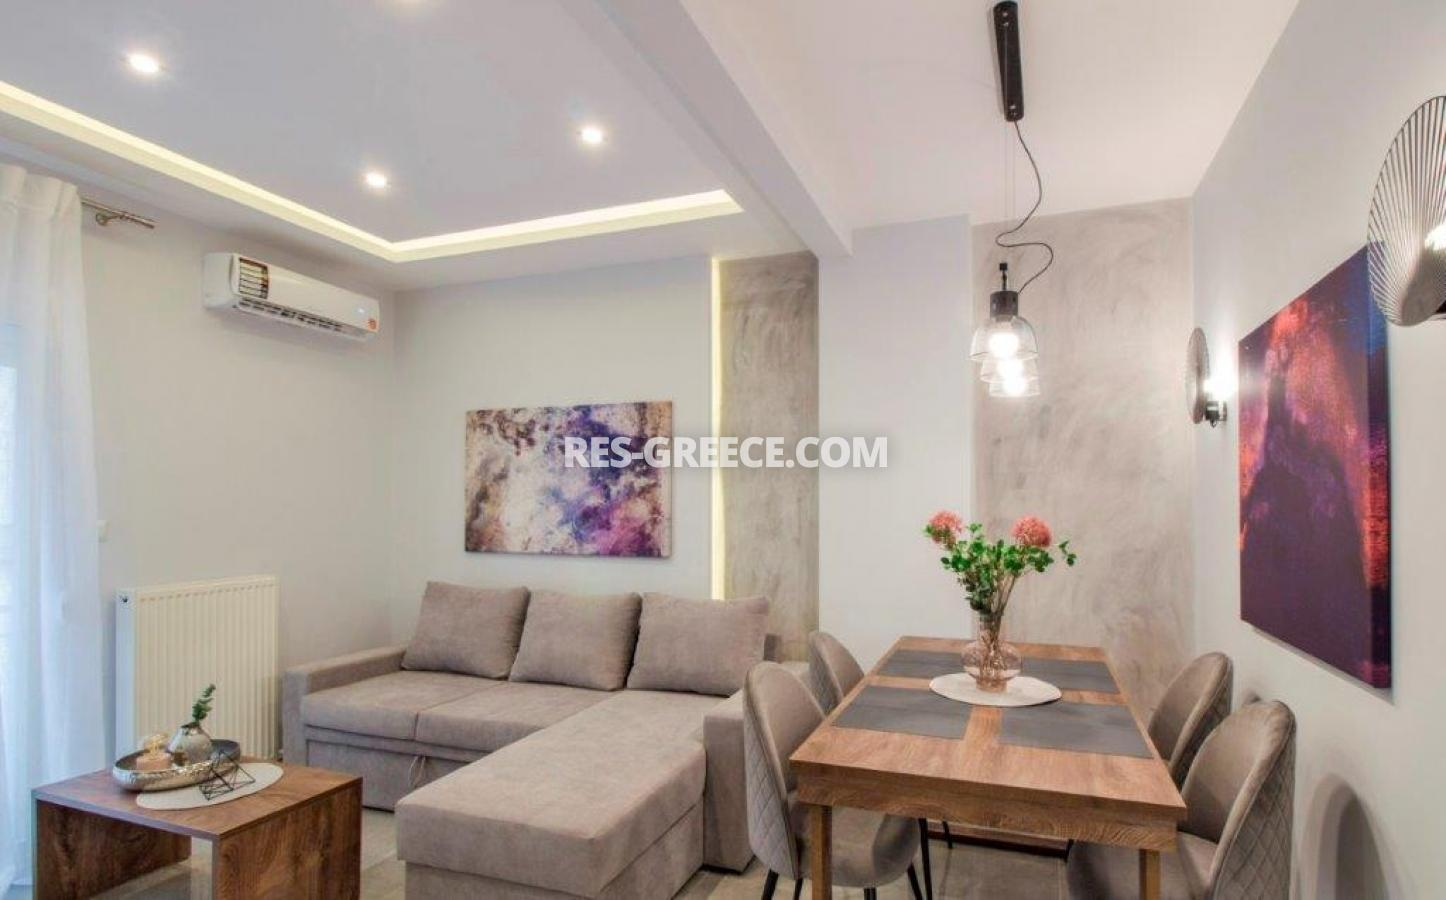 Kontogouri, Central Macedonia, Greece - fully furnished and decorated apartment after full renovation near Nea Paralia - Photo 1